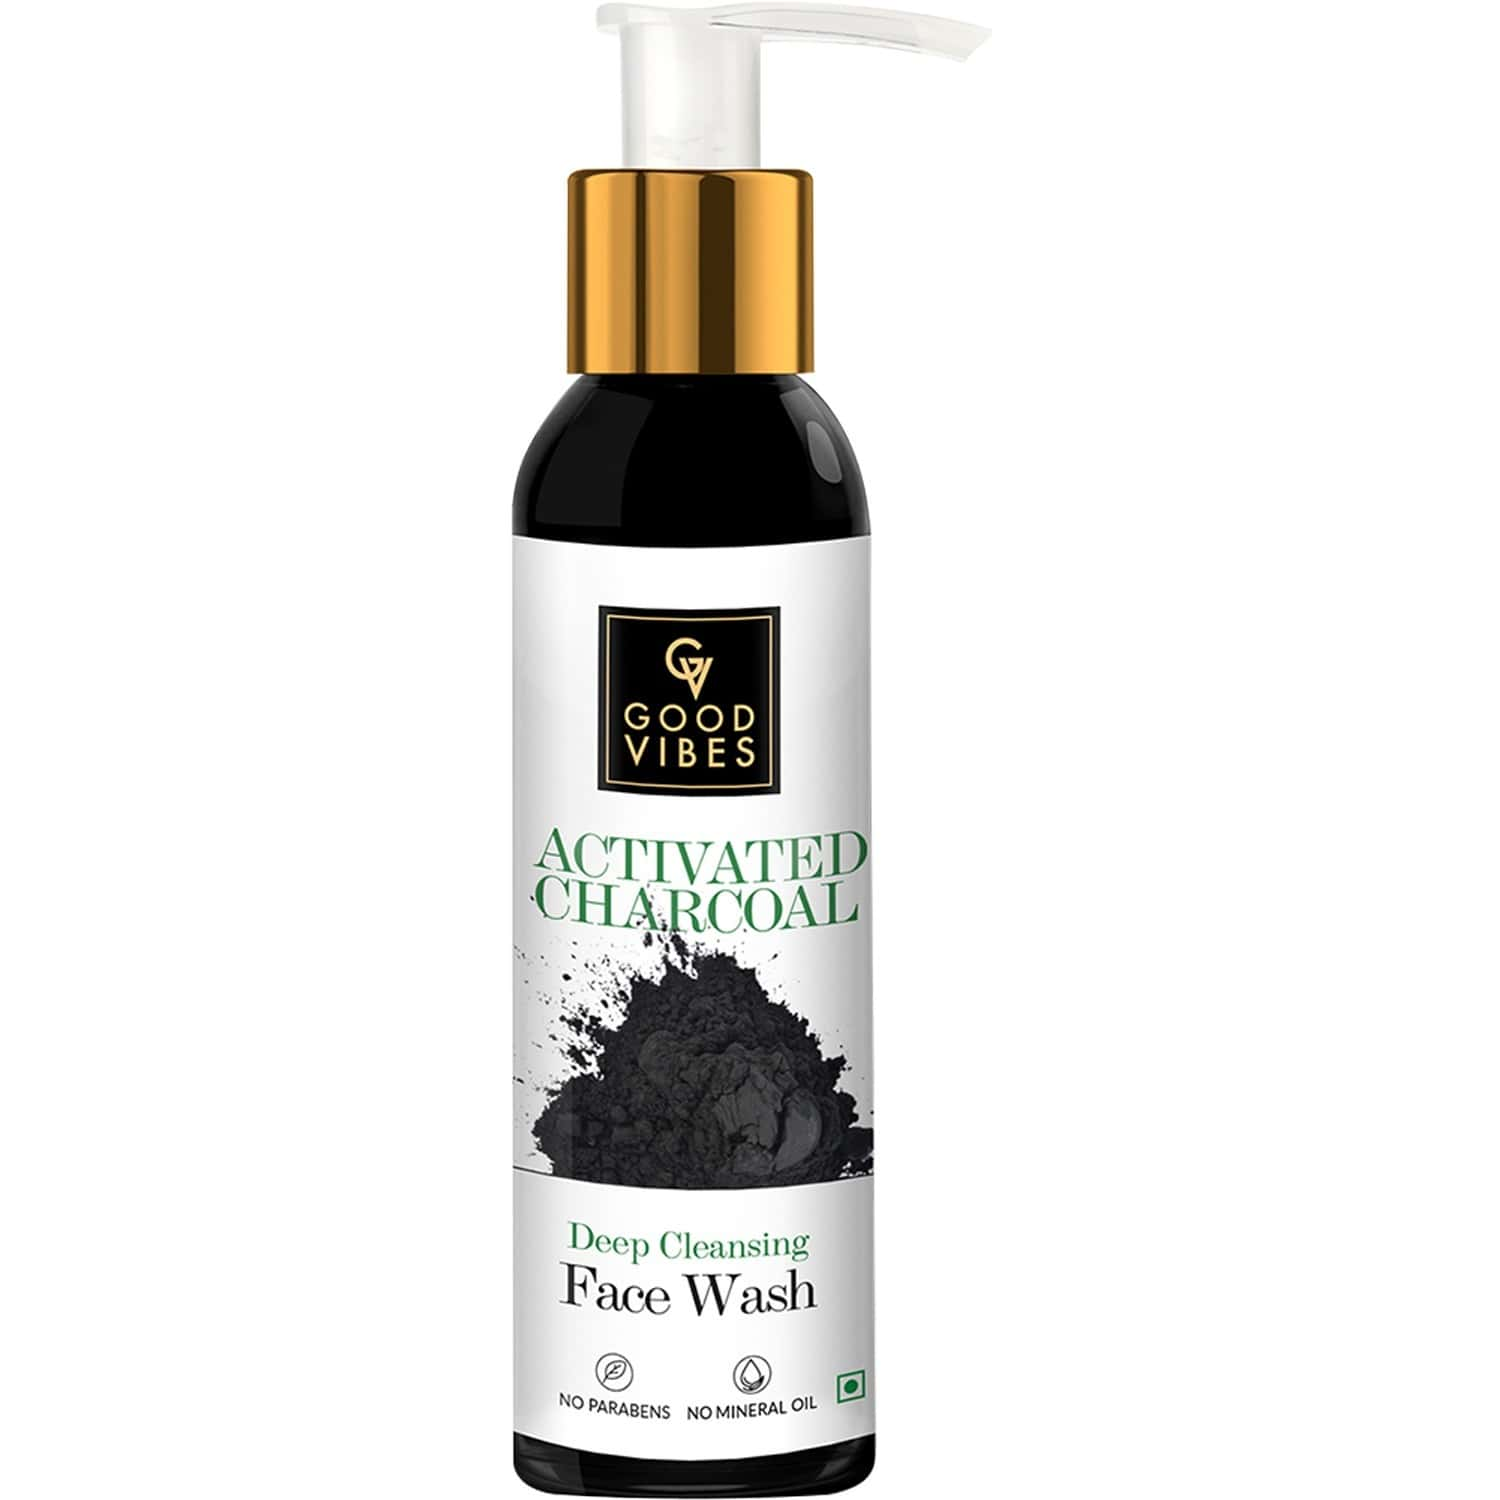 Good Vibes Deep Cleansing Face Wash - Activated Charcoal -120 Ml